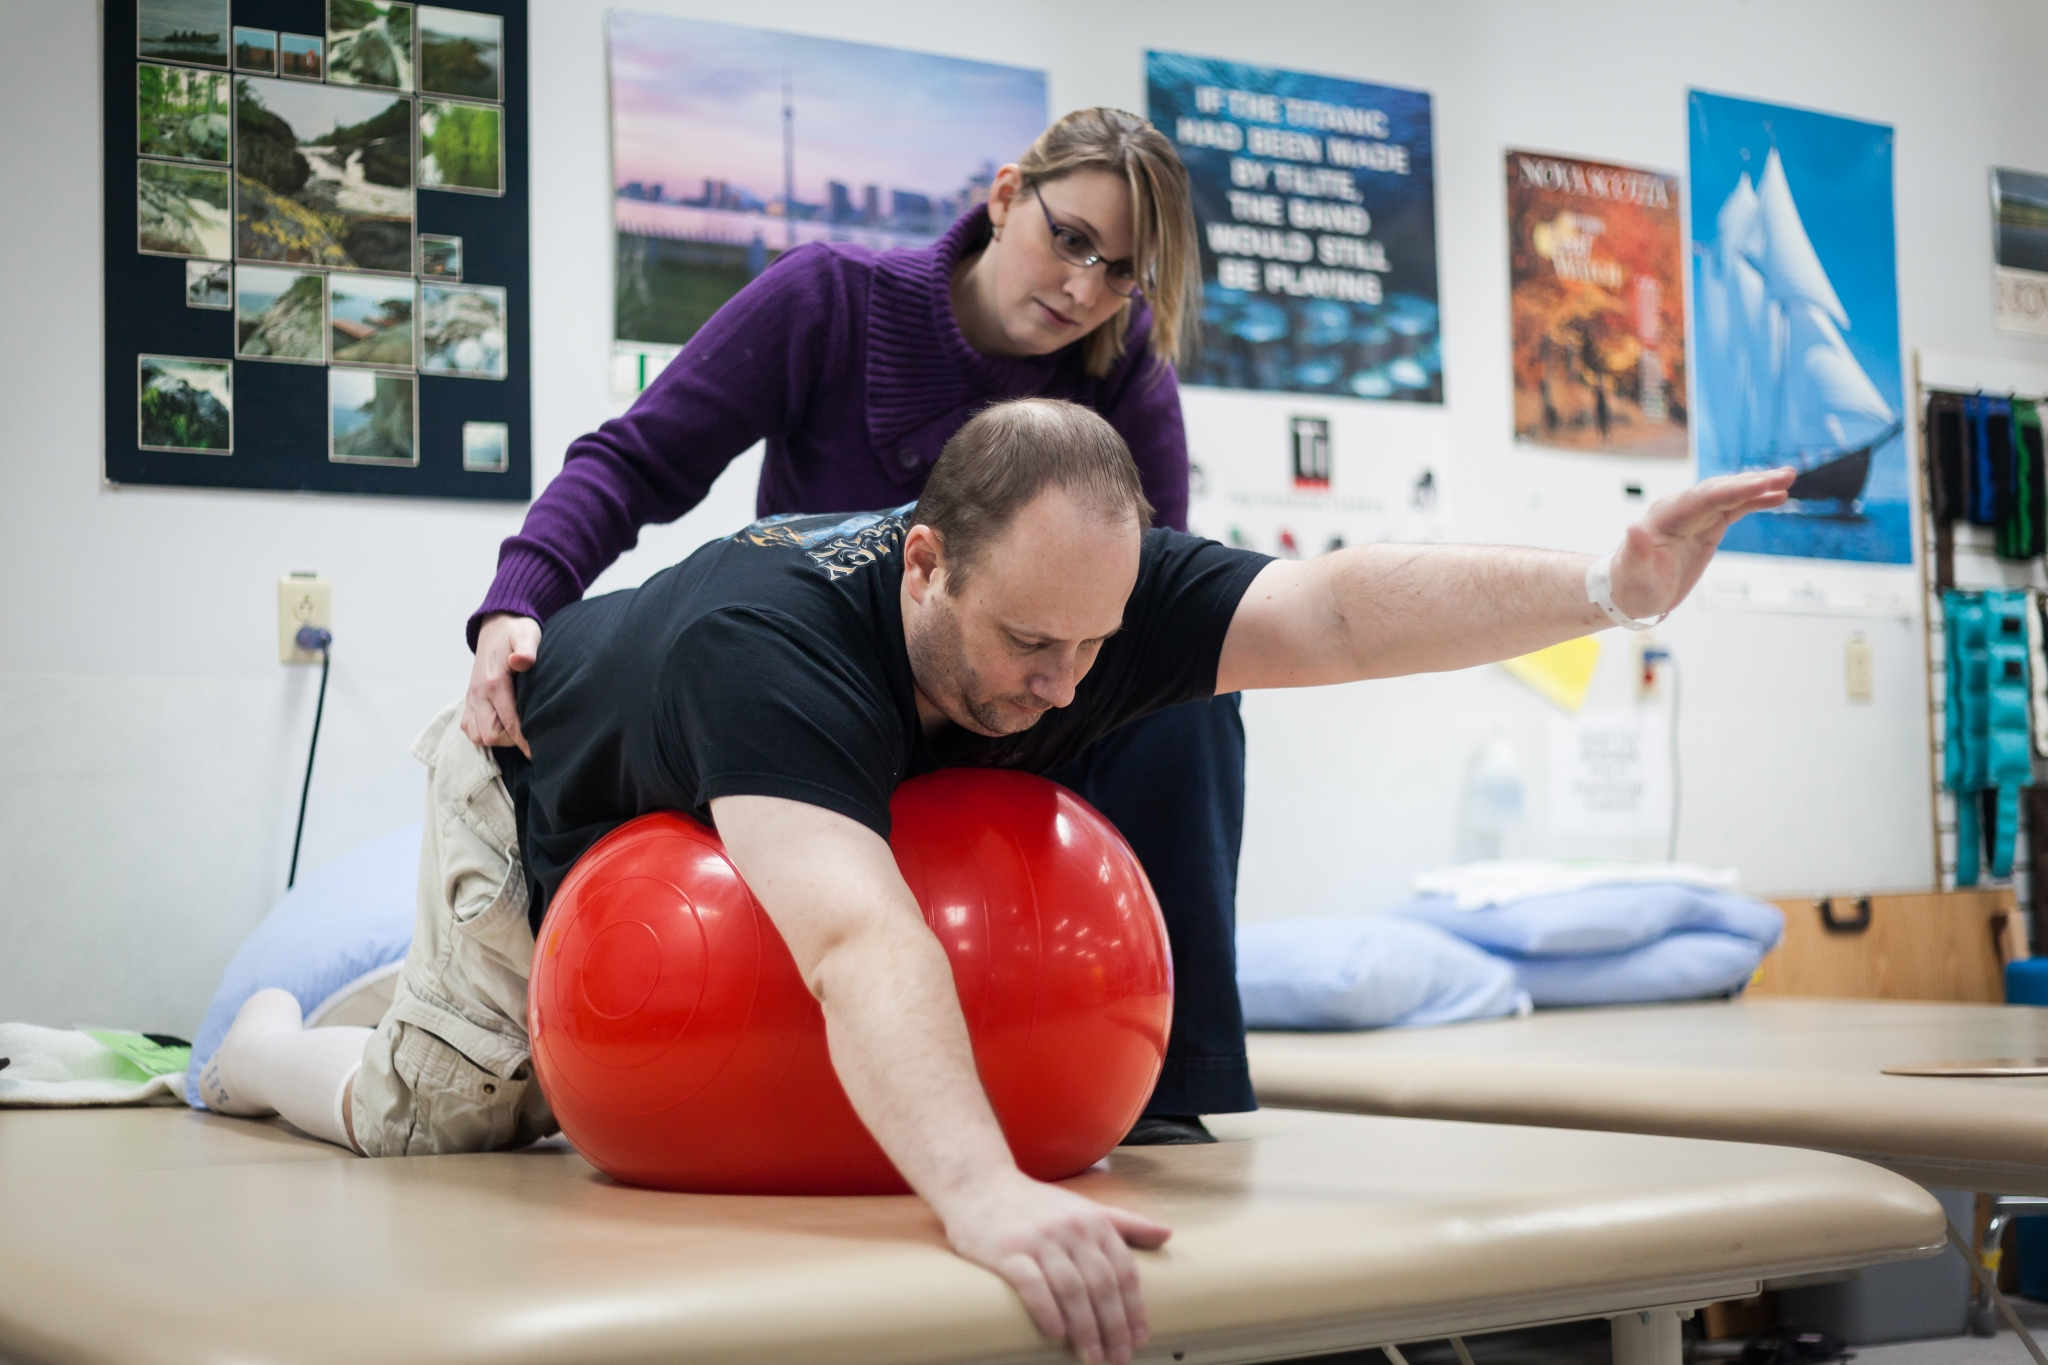 Physiotherapist working with adult patient on mobility exercises using large exercise ball.